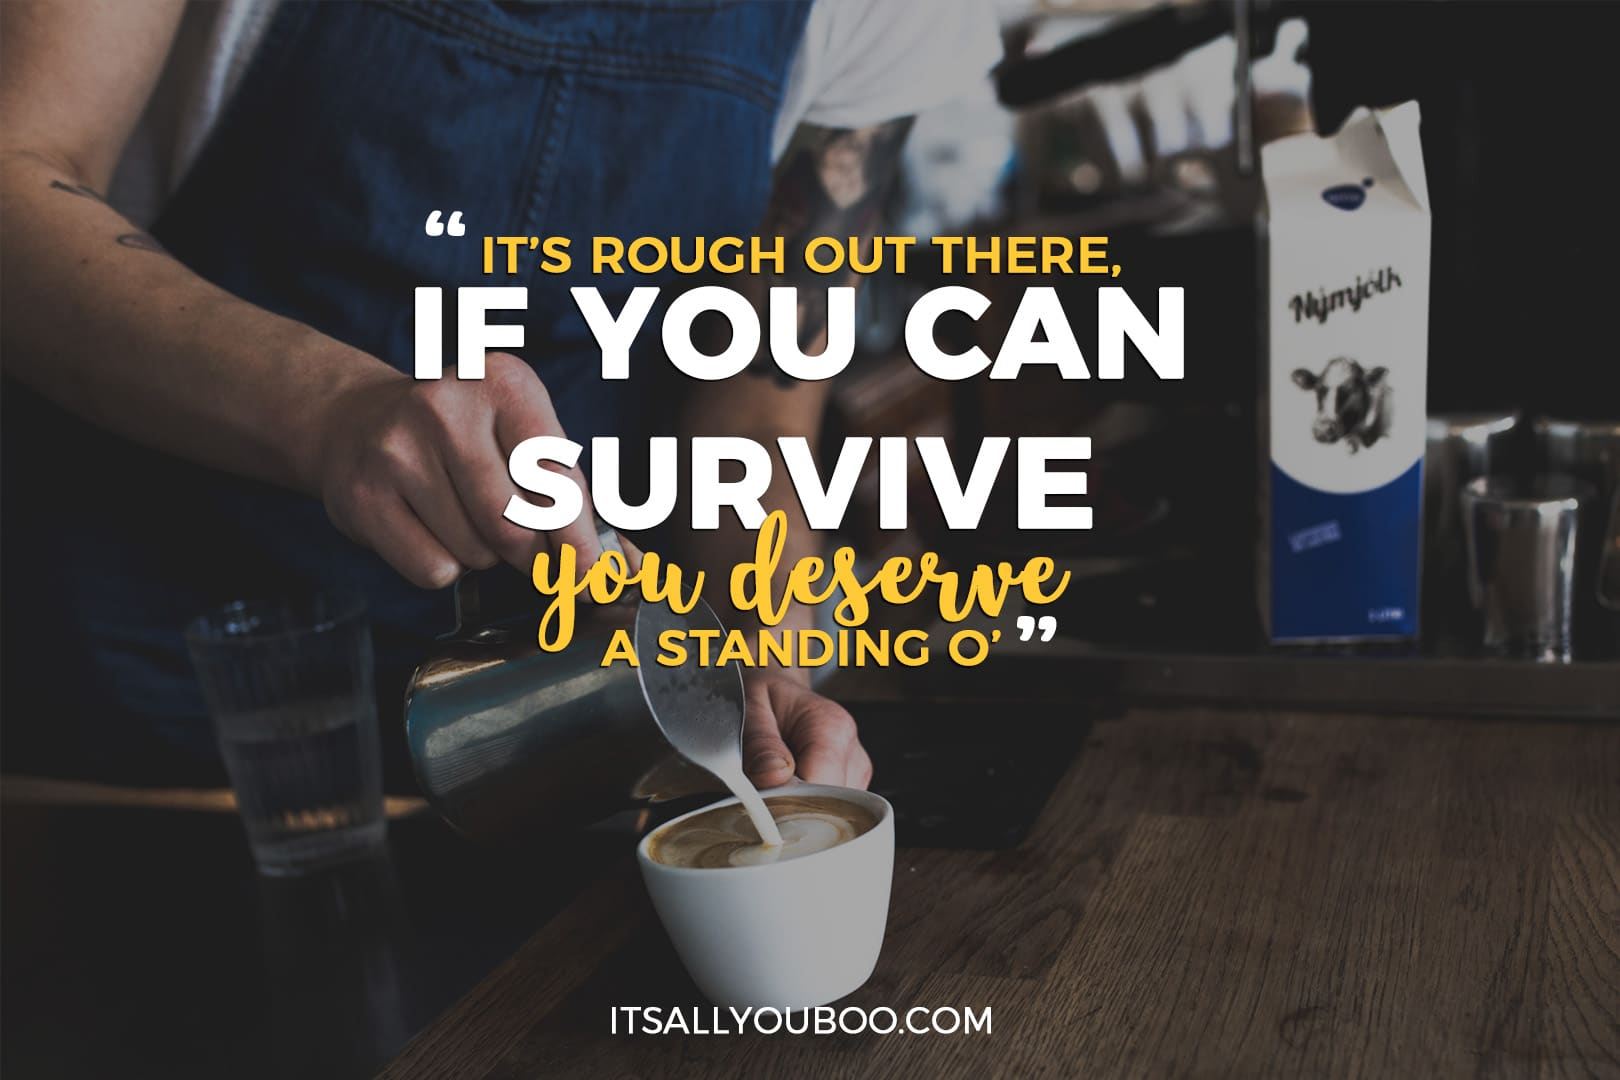 """barista making coffee with the quote, """"It's rough out there, if you can survive you deserve a standing o'"""""""